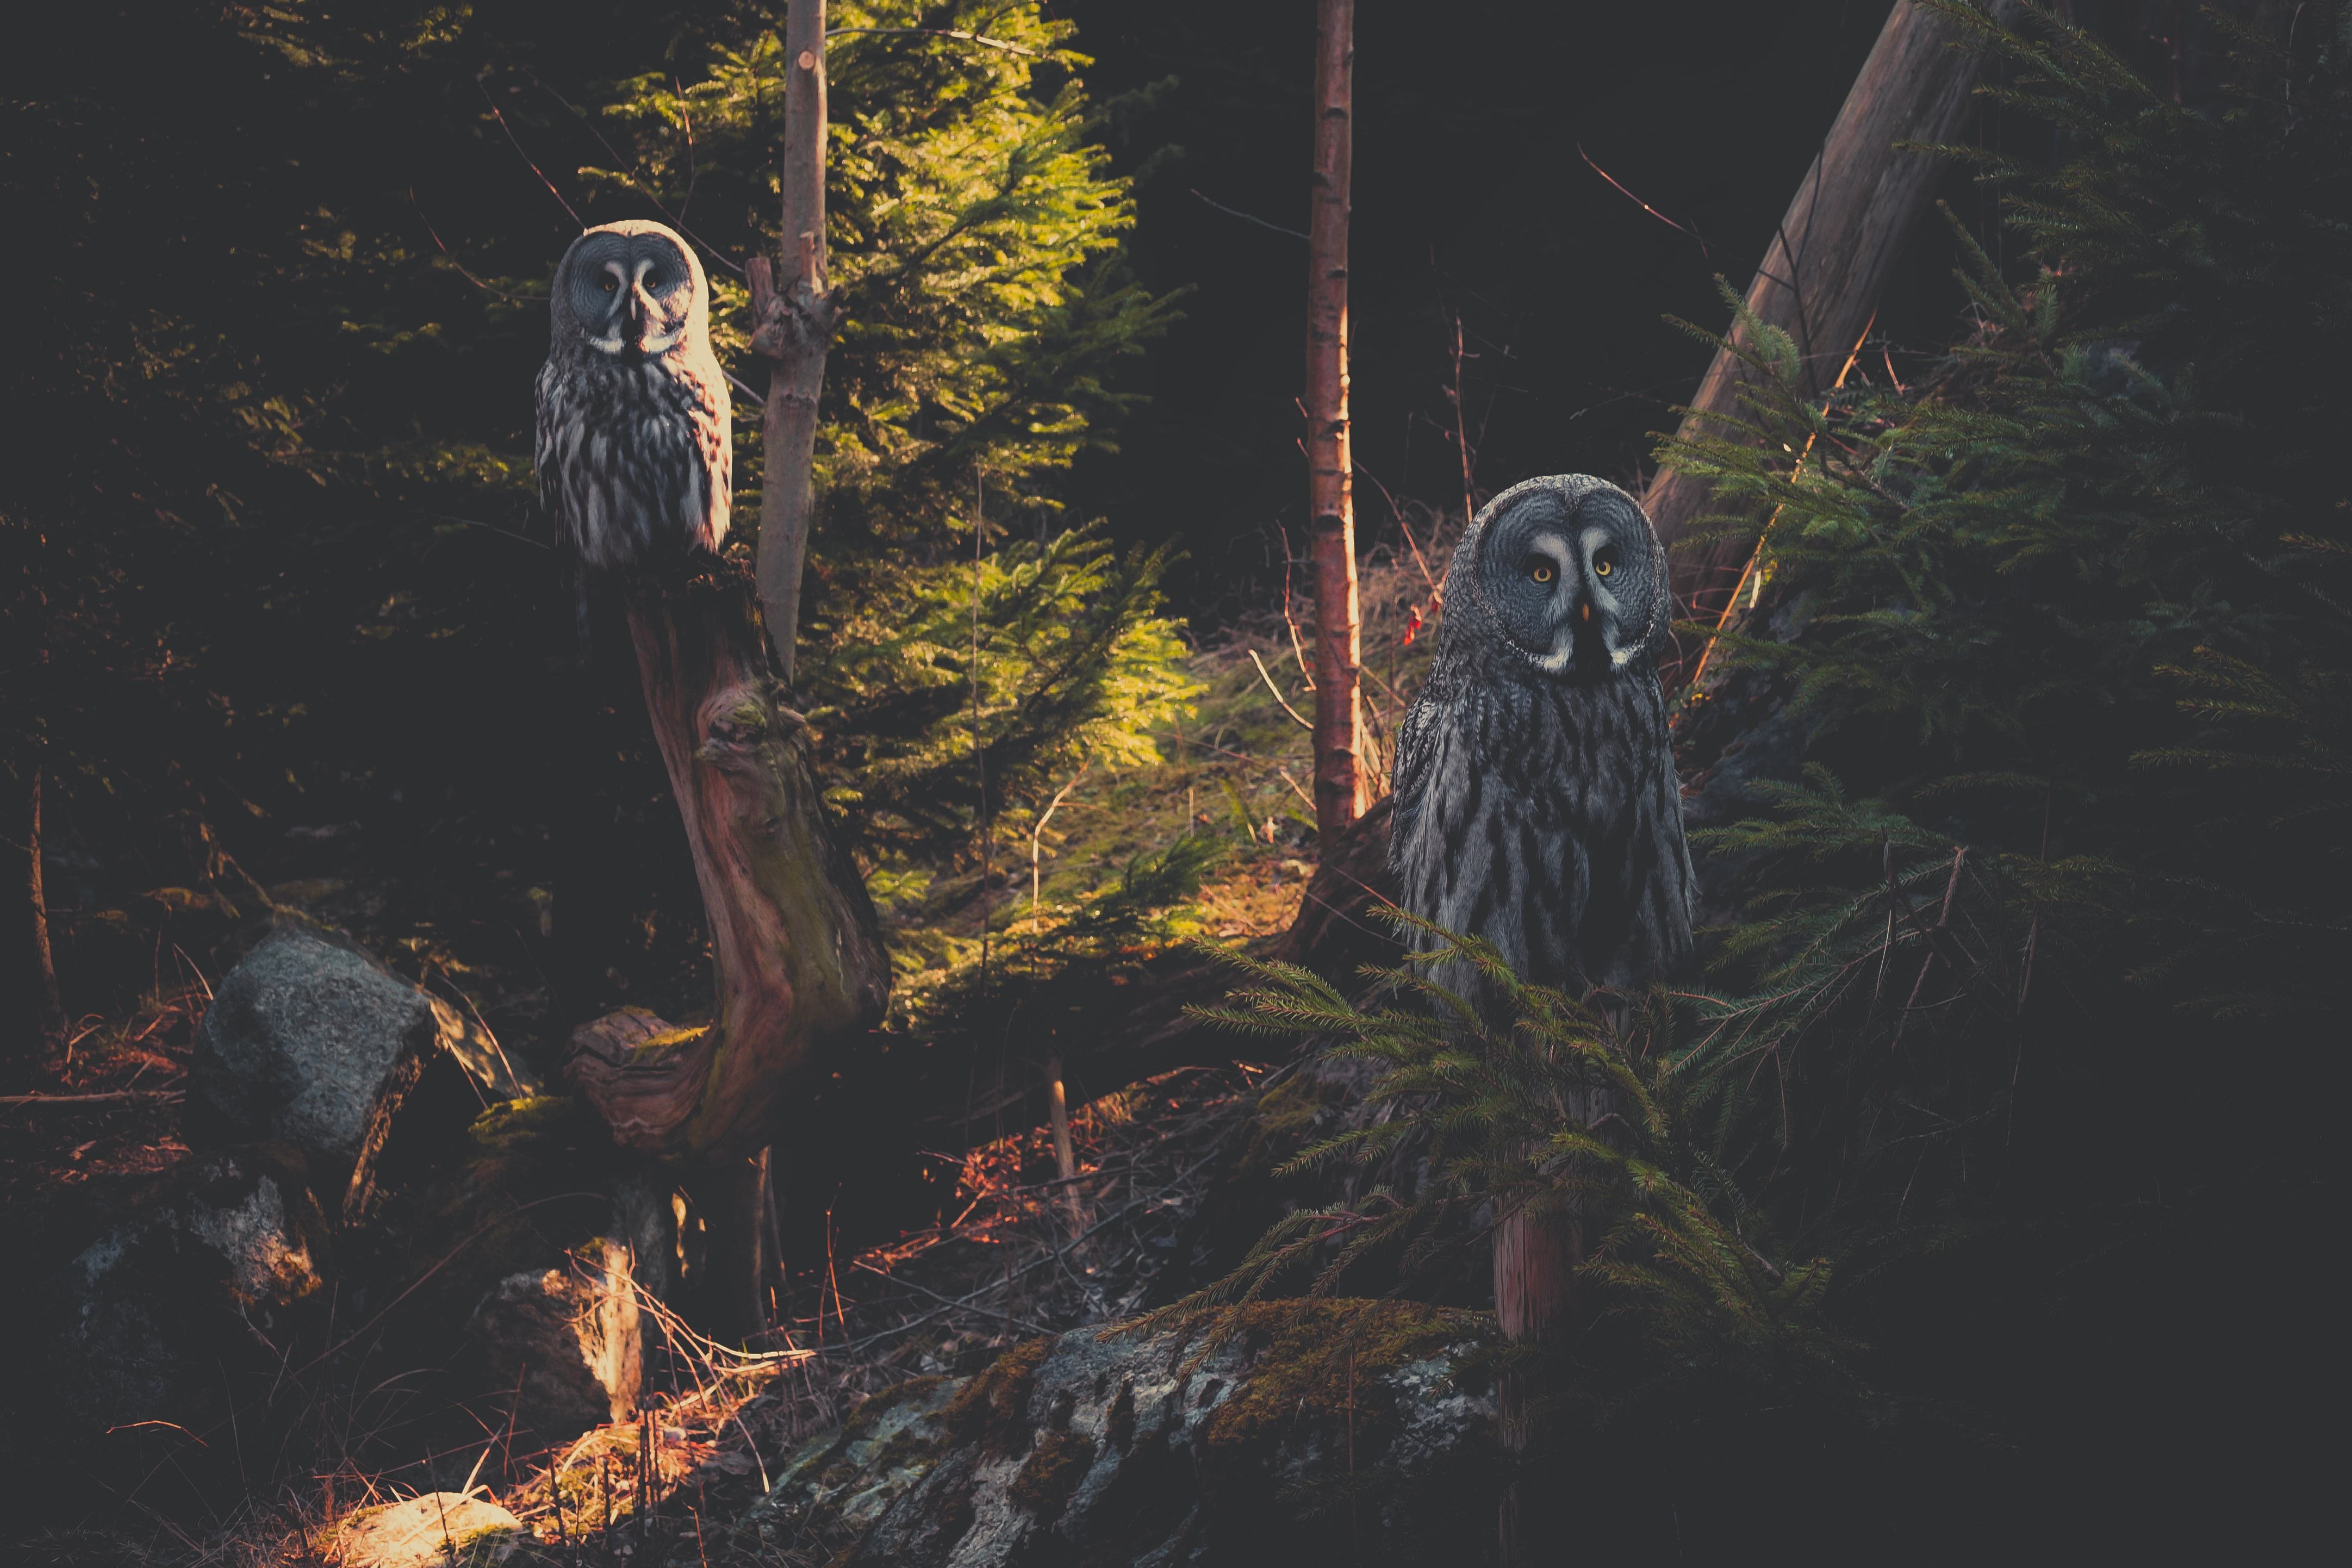 Two owl perched on gnarly tree trunks in a forest